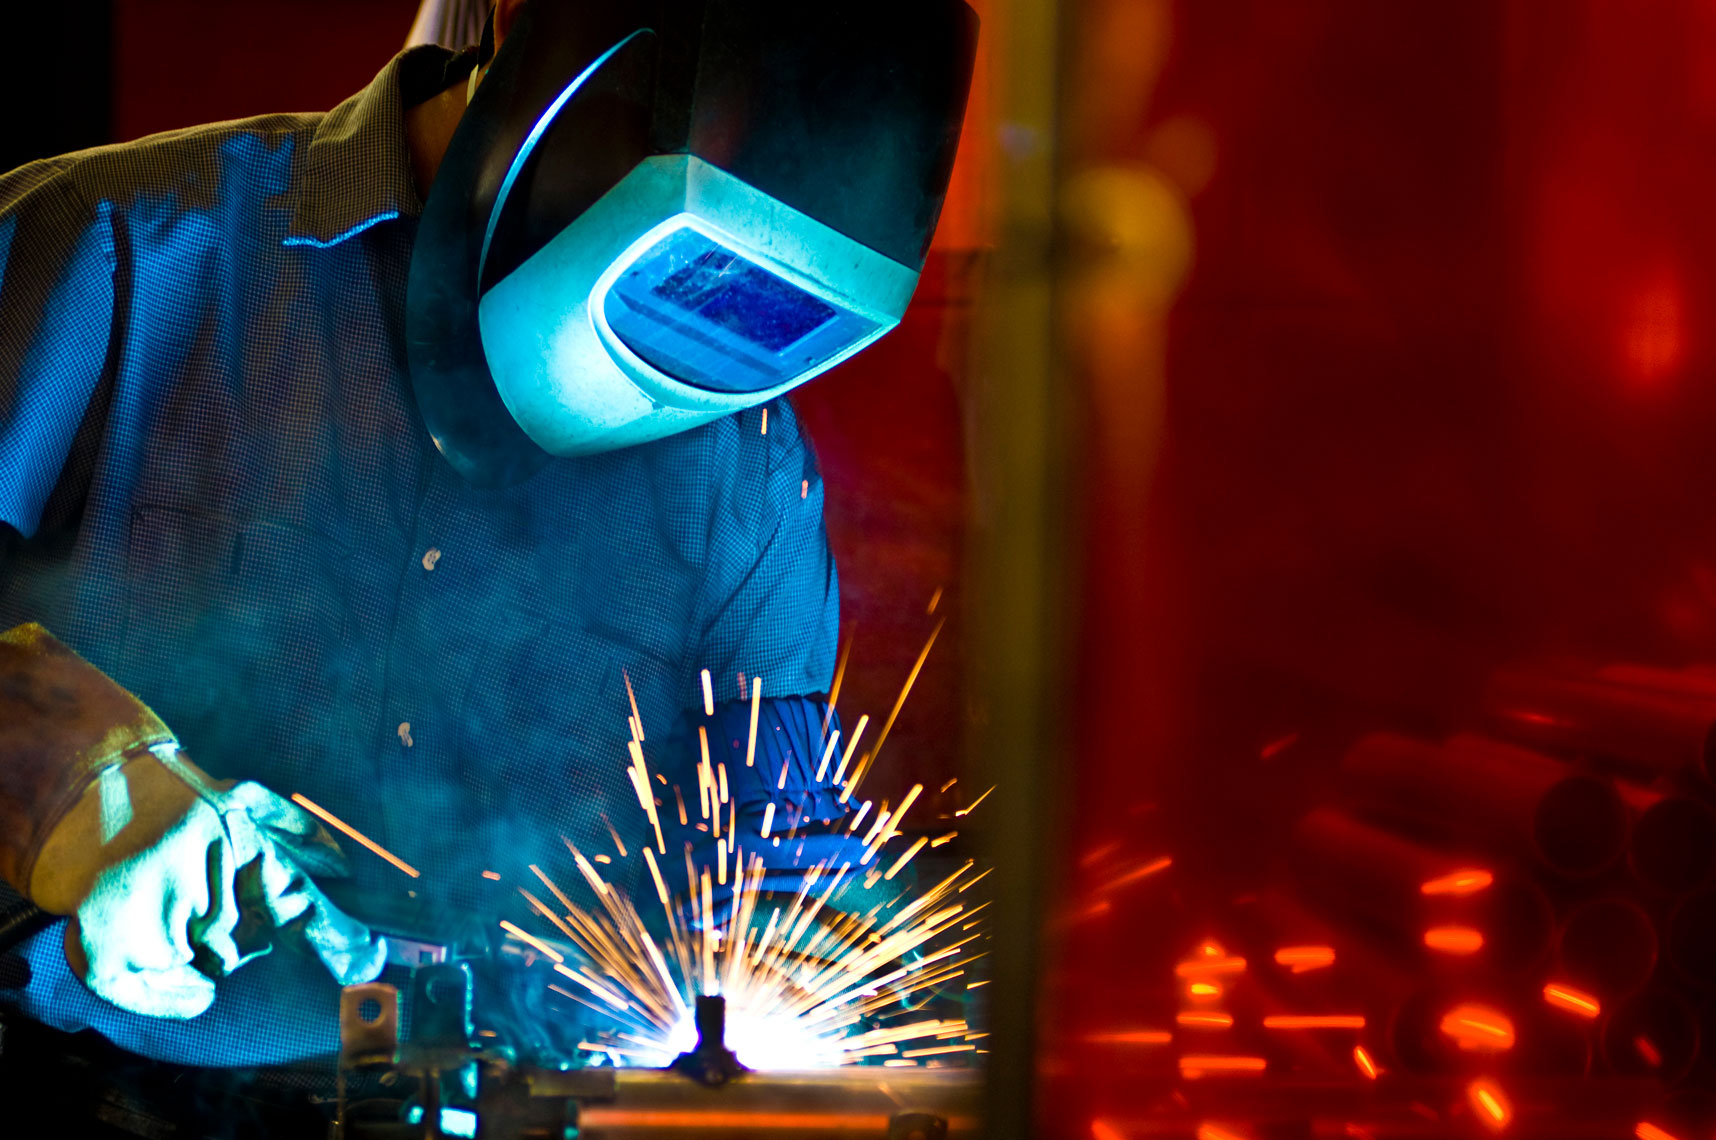 Metal-Welder-by-annual-report-photographer-Joe-Atlas.